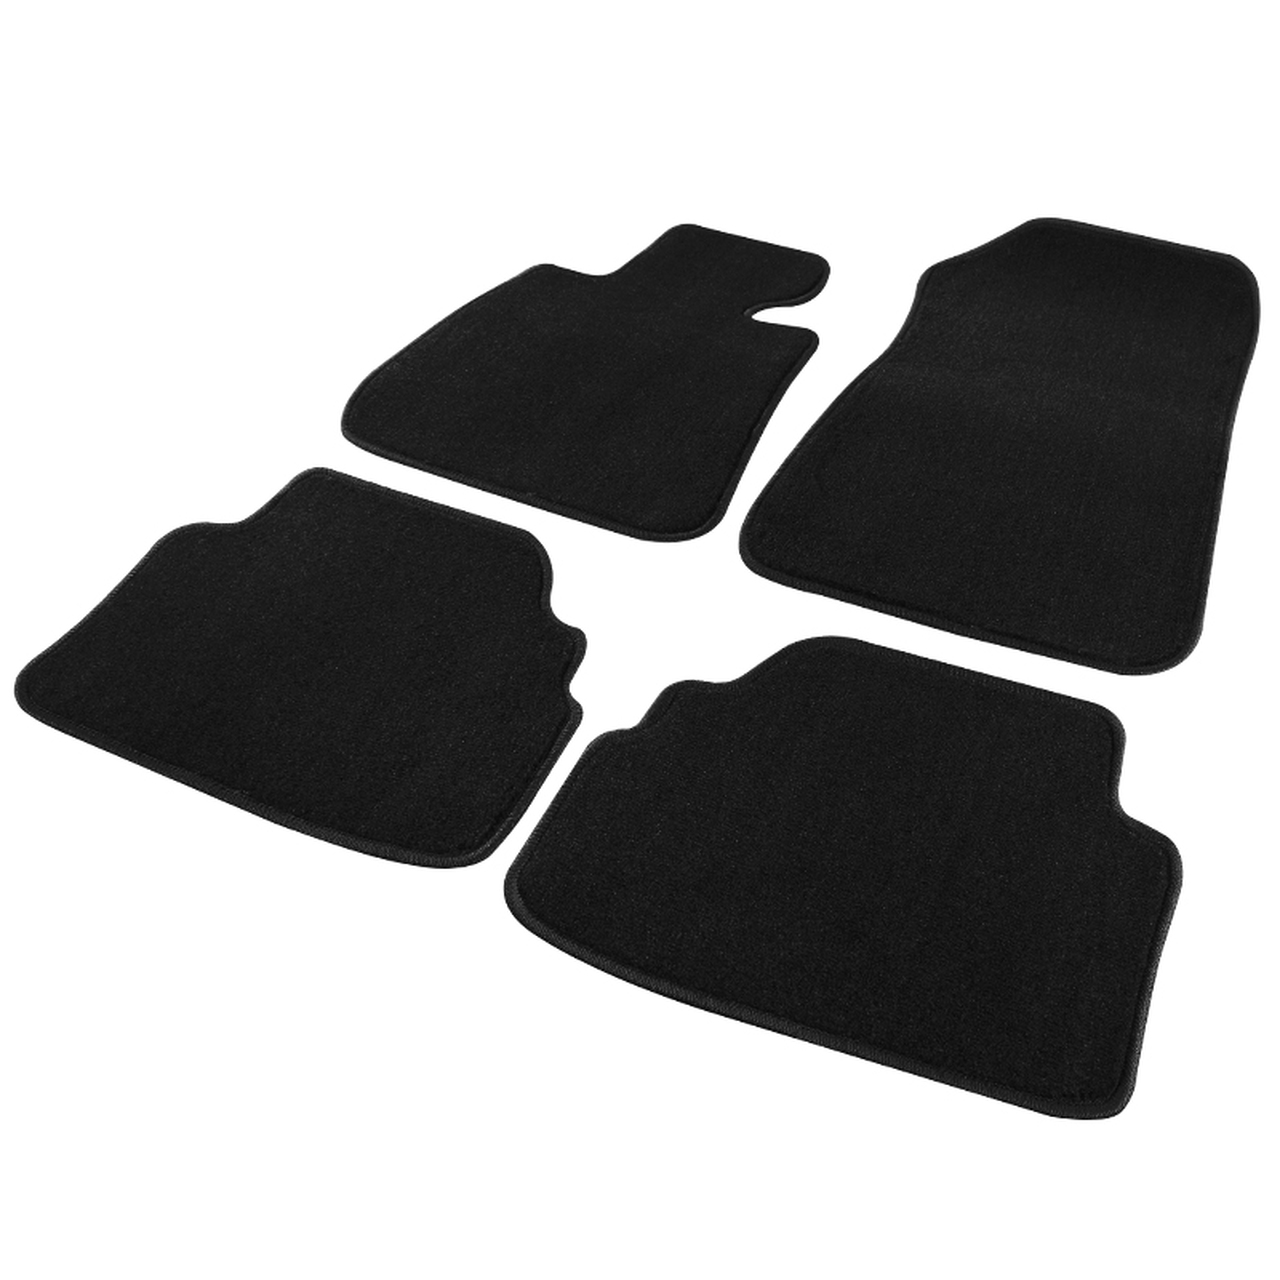 Spec-D Tuning Black Floor Mats - Spec-D Tuning SD-TRA-923